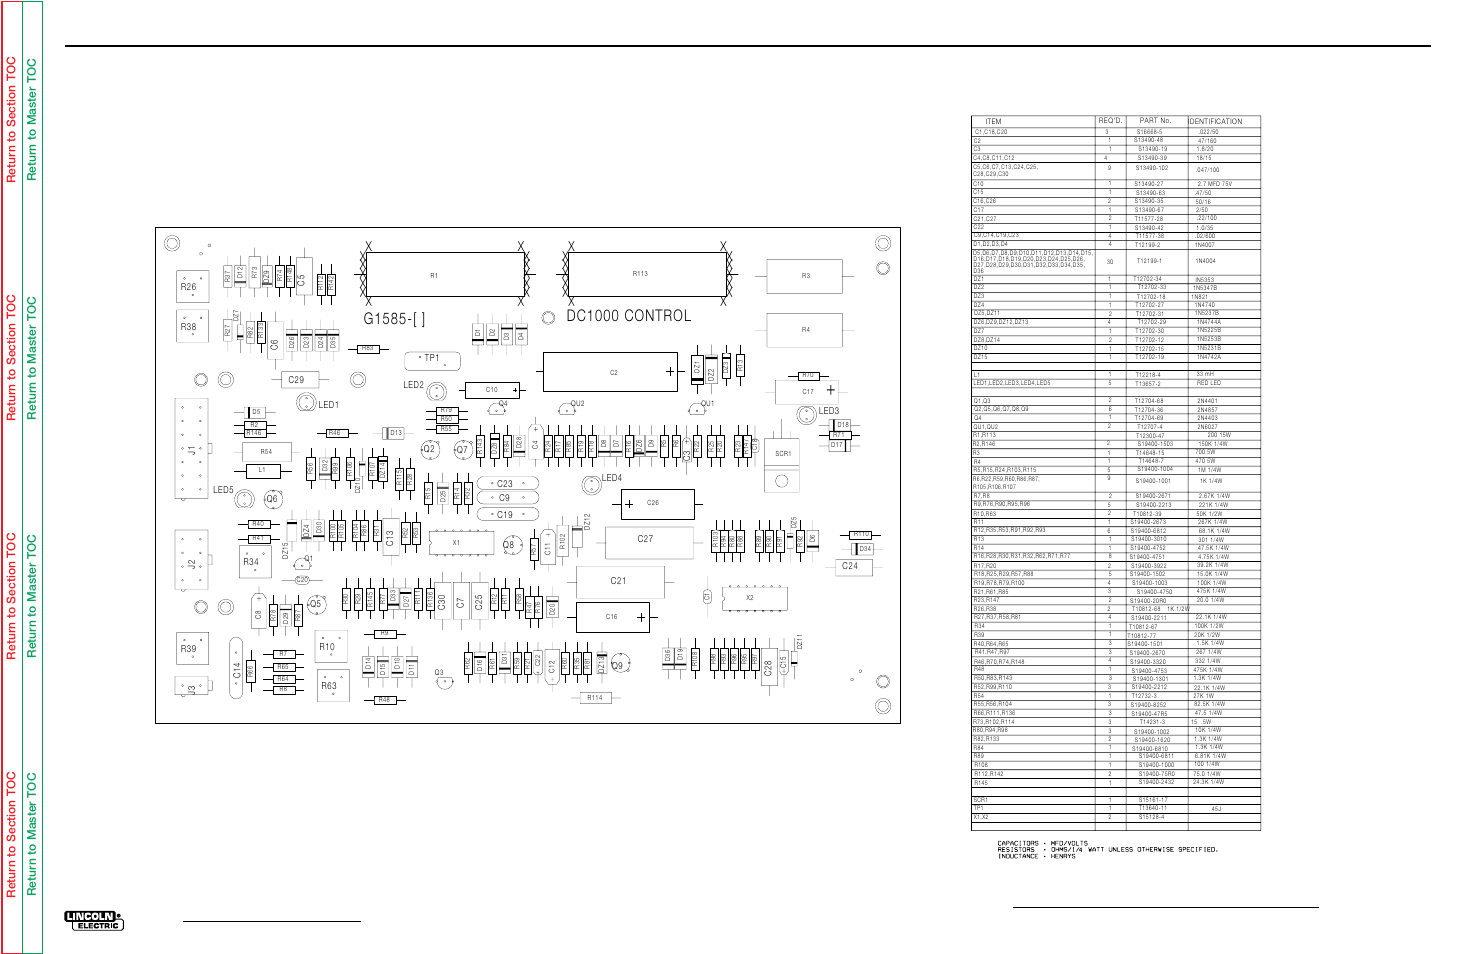 Electrical diagrams, Control pc board (g1585) layout